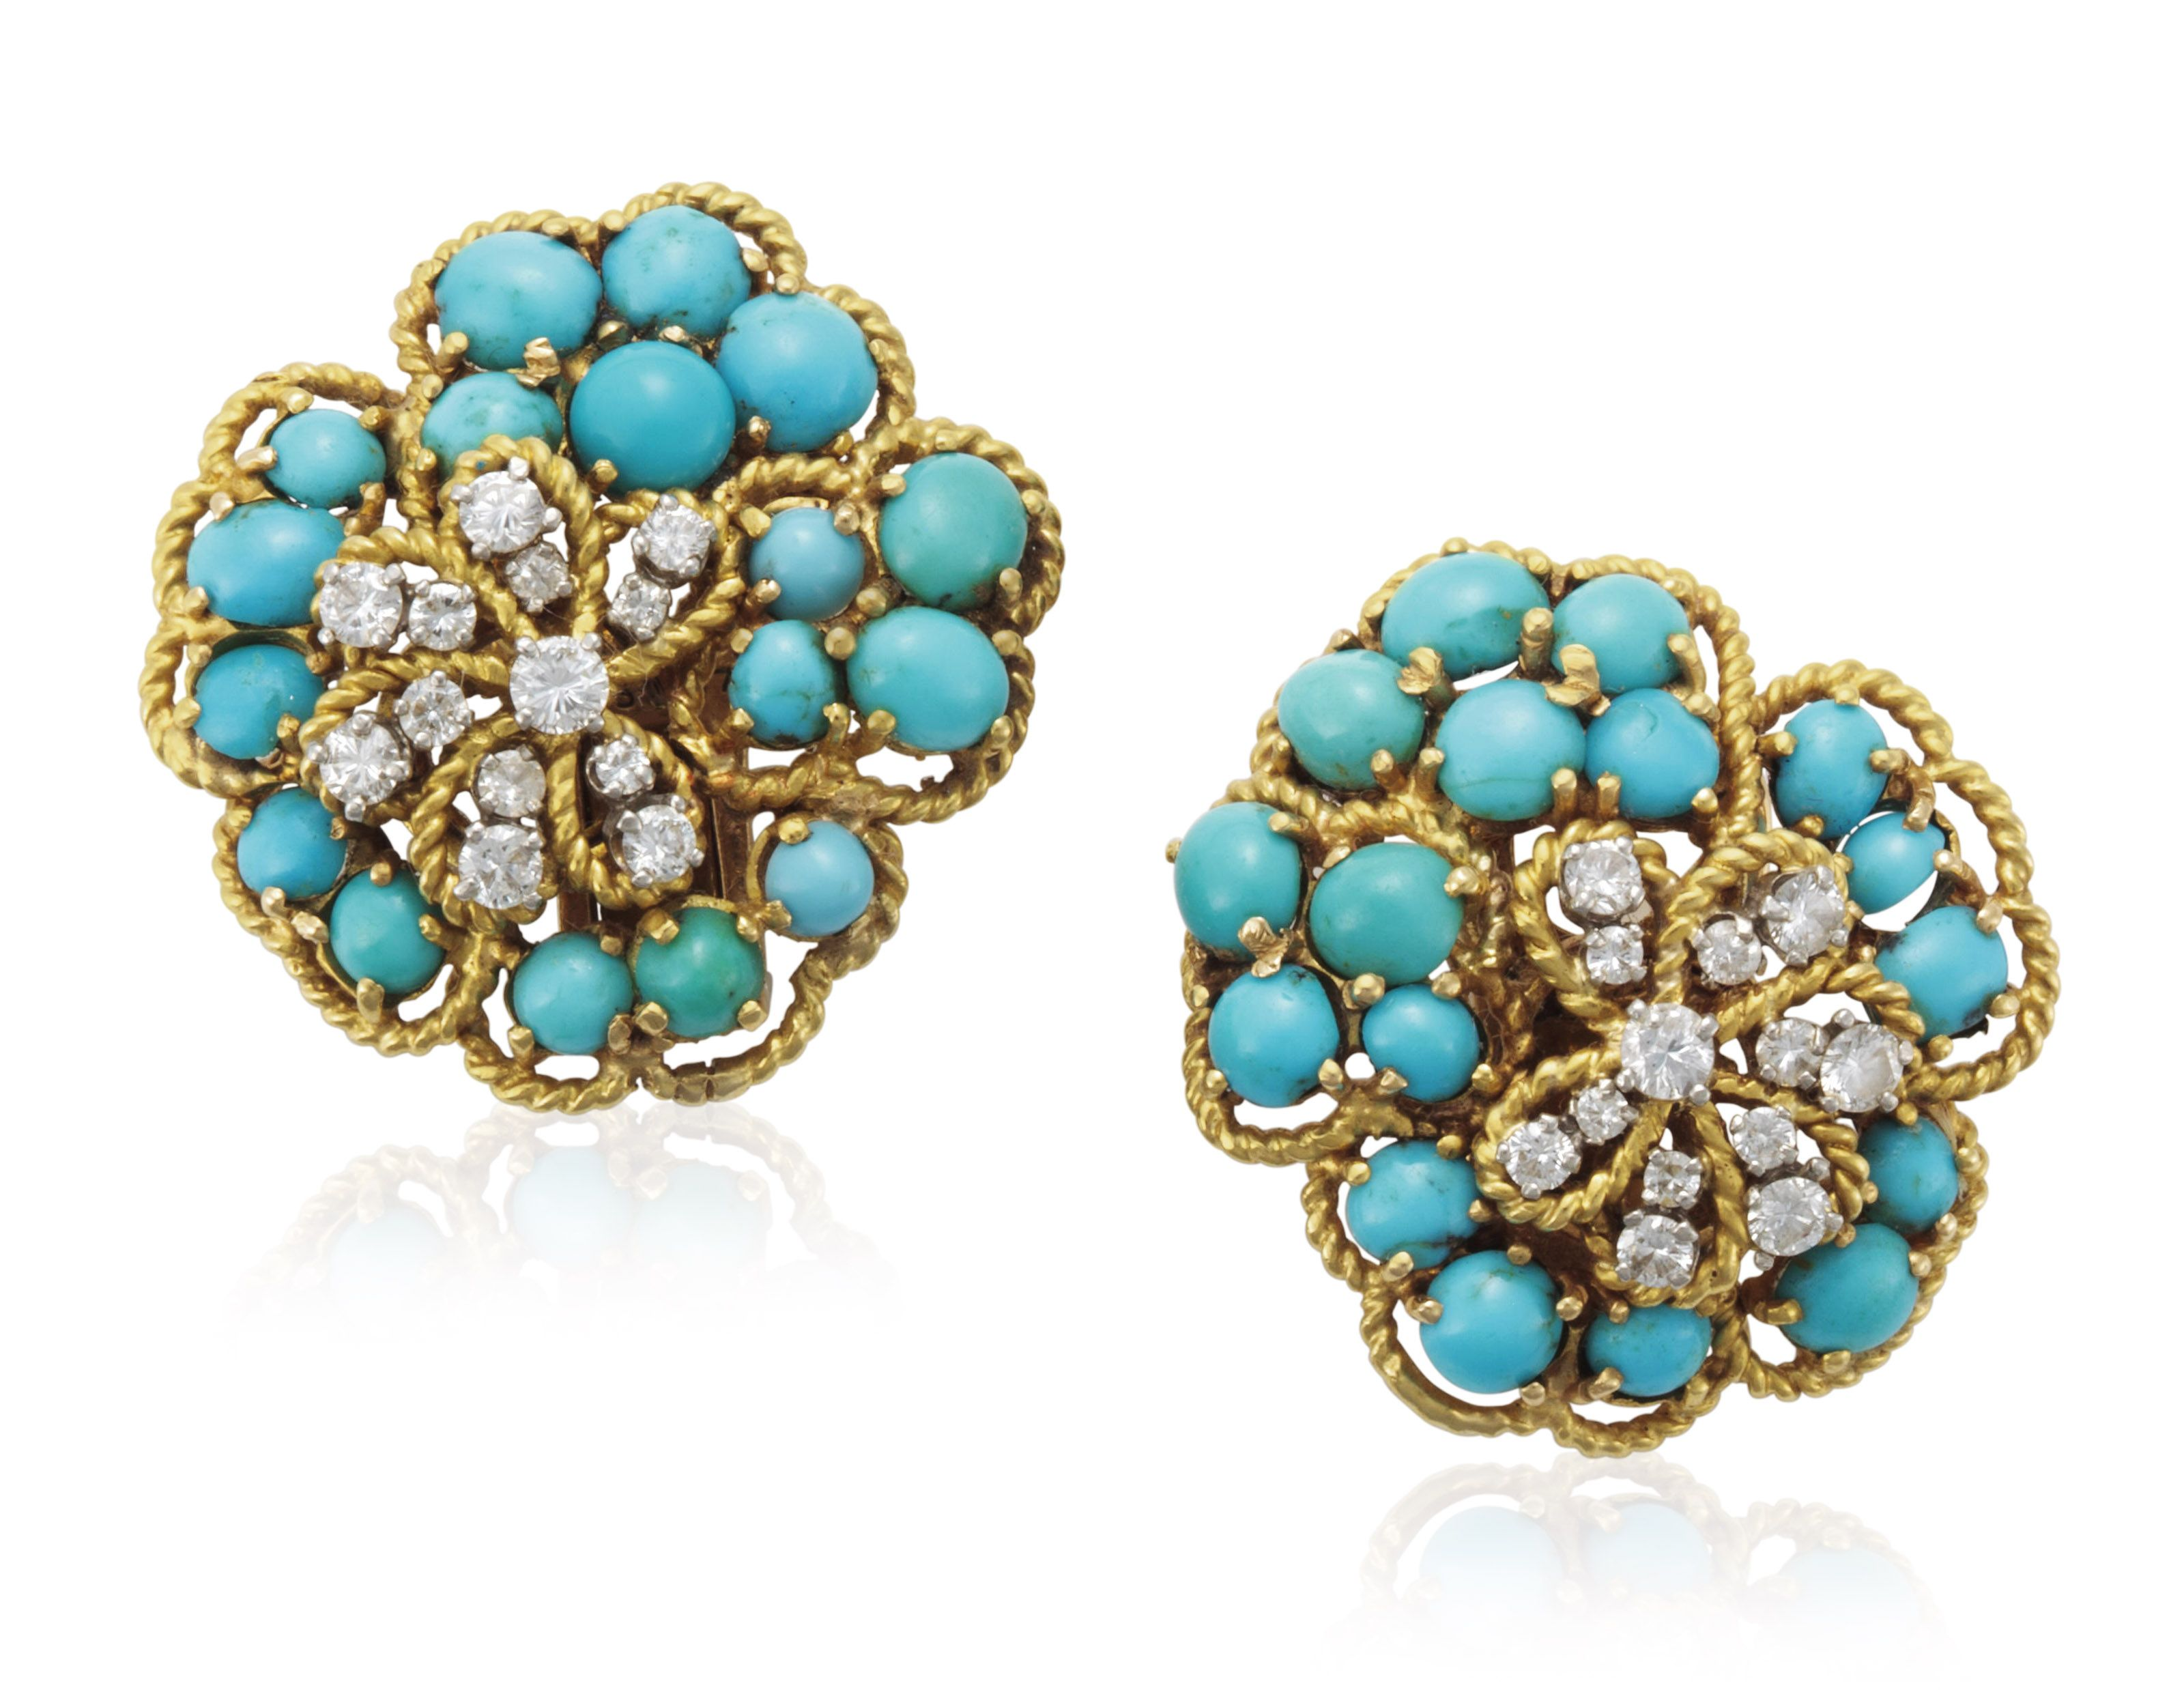 Van Cleef & Arpels Floral Earrings